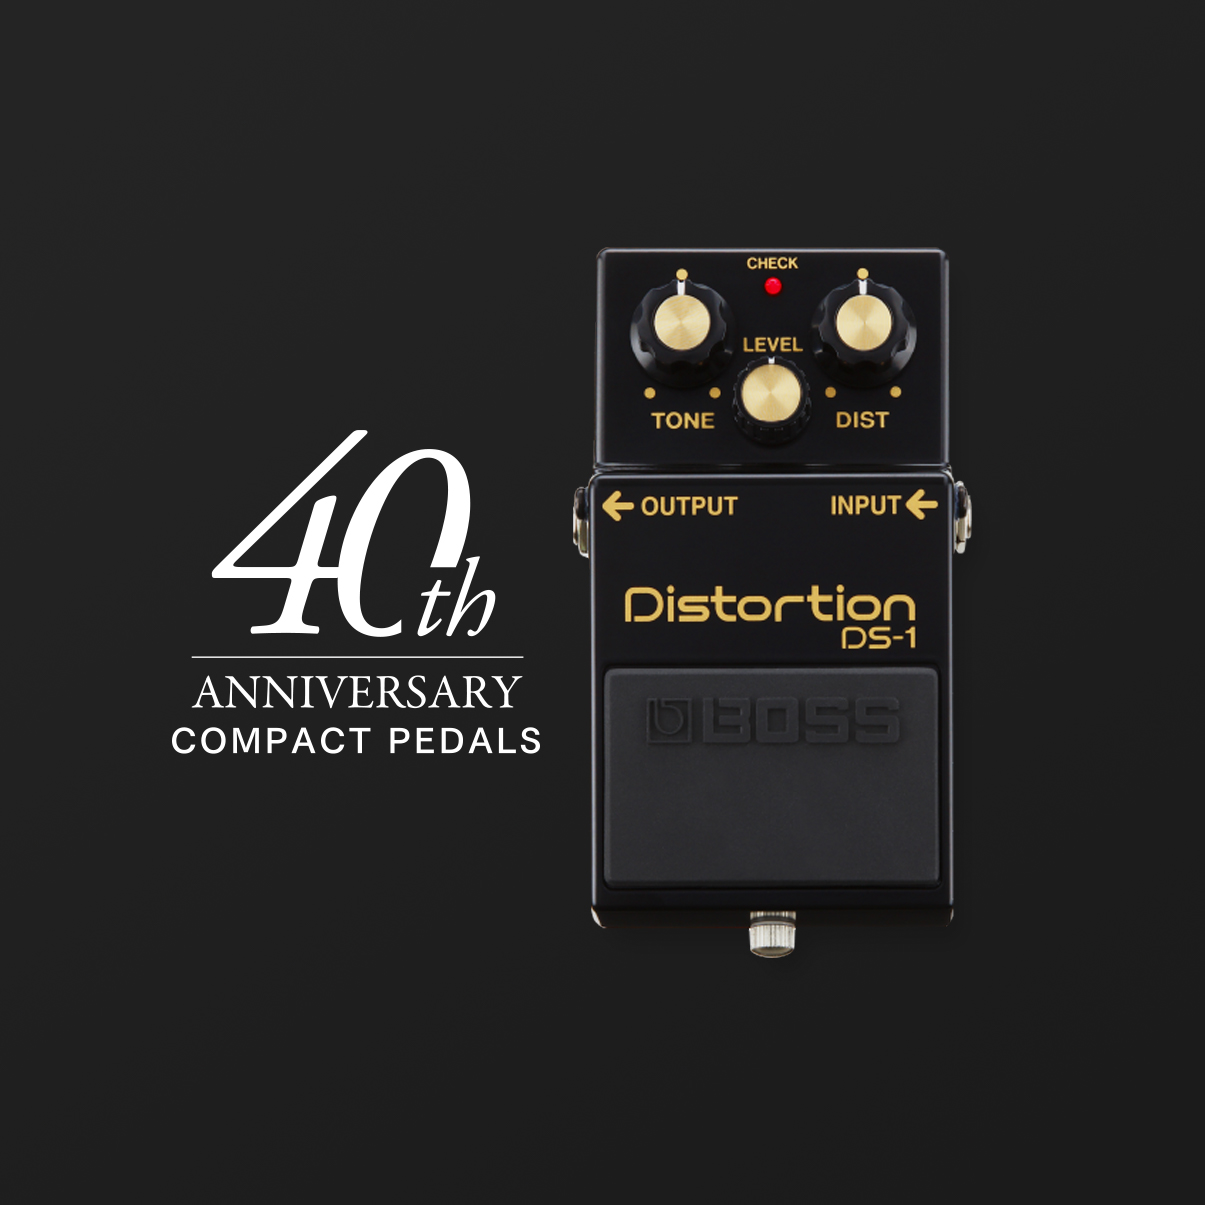 BOSS DS-1 Distortion Guitar Pedal, Black, 40th Anniversary Limited Edition boss ds 1